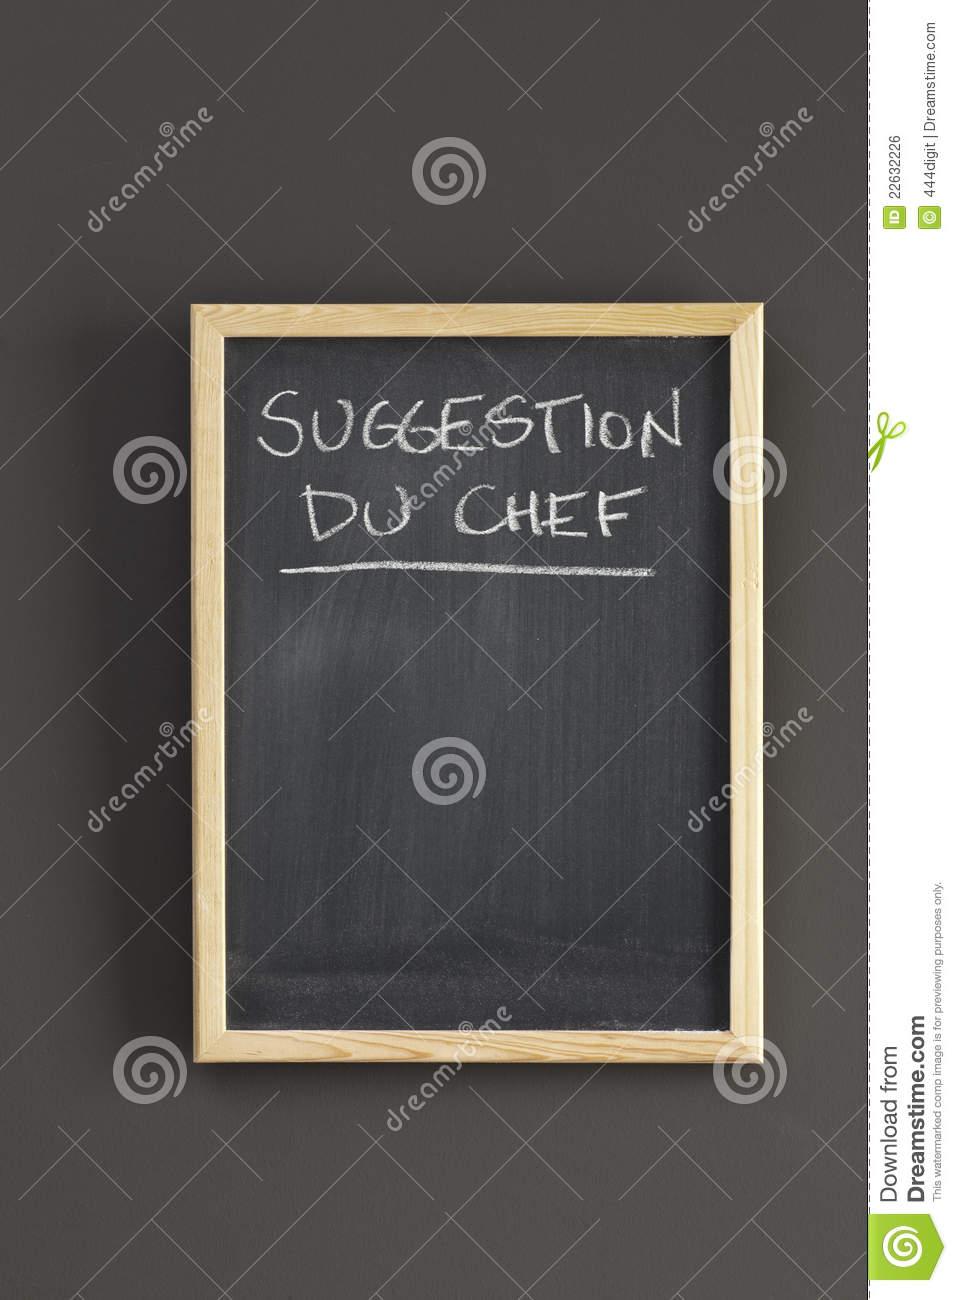 suggestion du chef sur le tableau noir photo stock image du suggestion aujourd 22632226. Black Bedroom Furniture Sets. Home Design Ideas